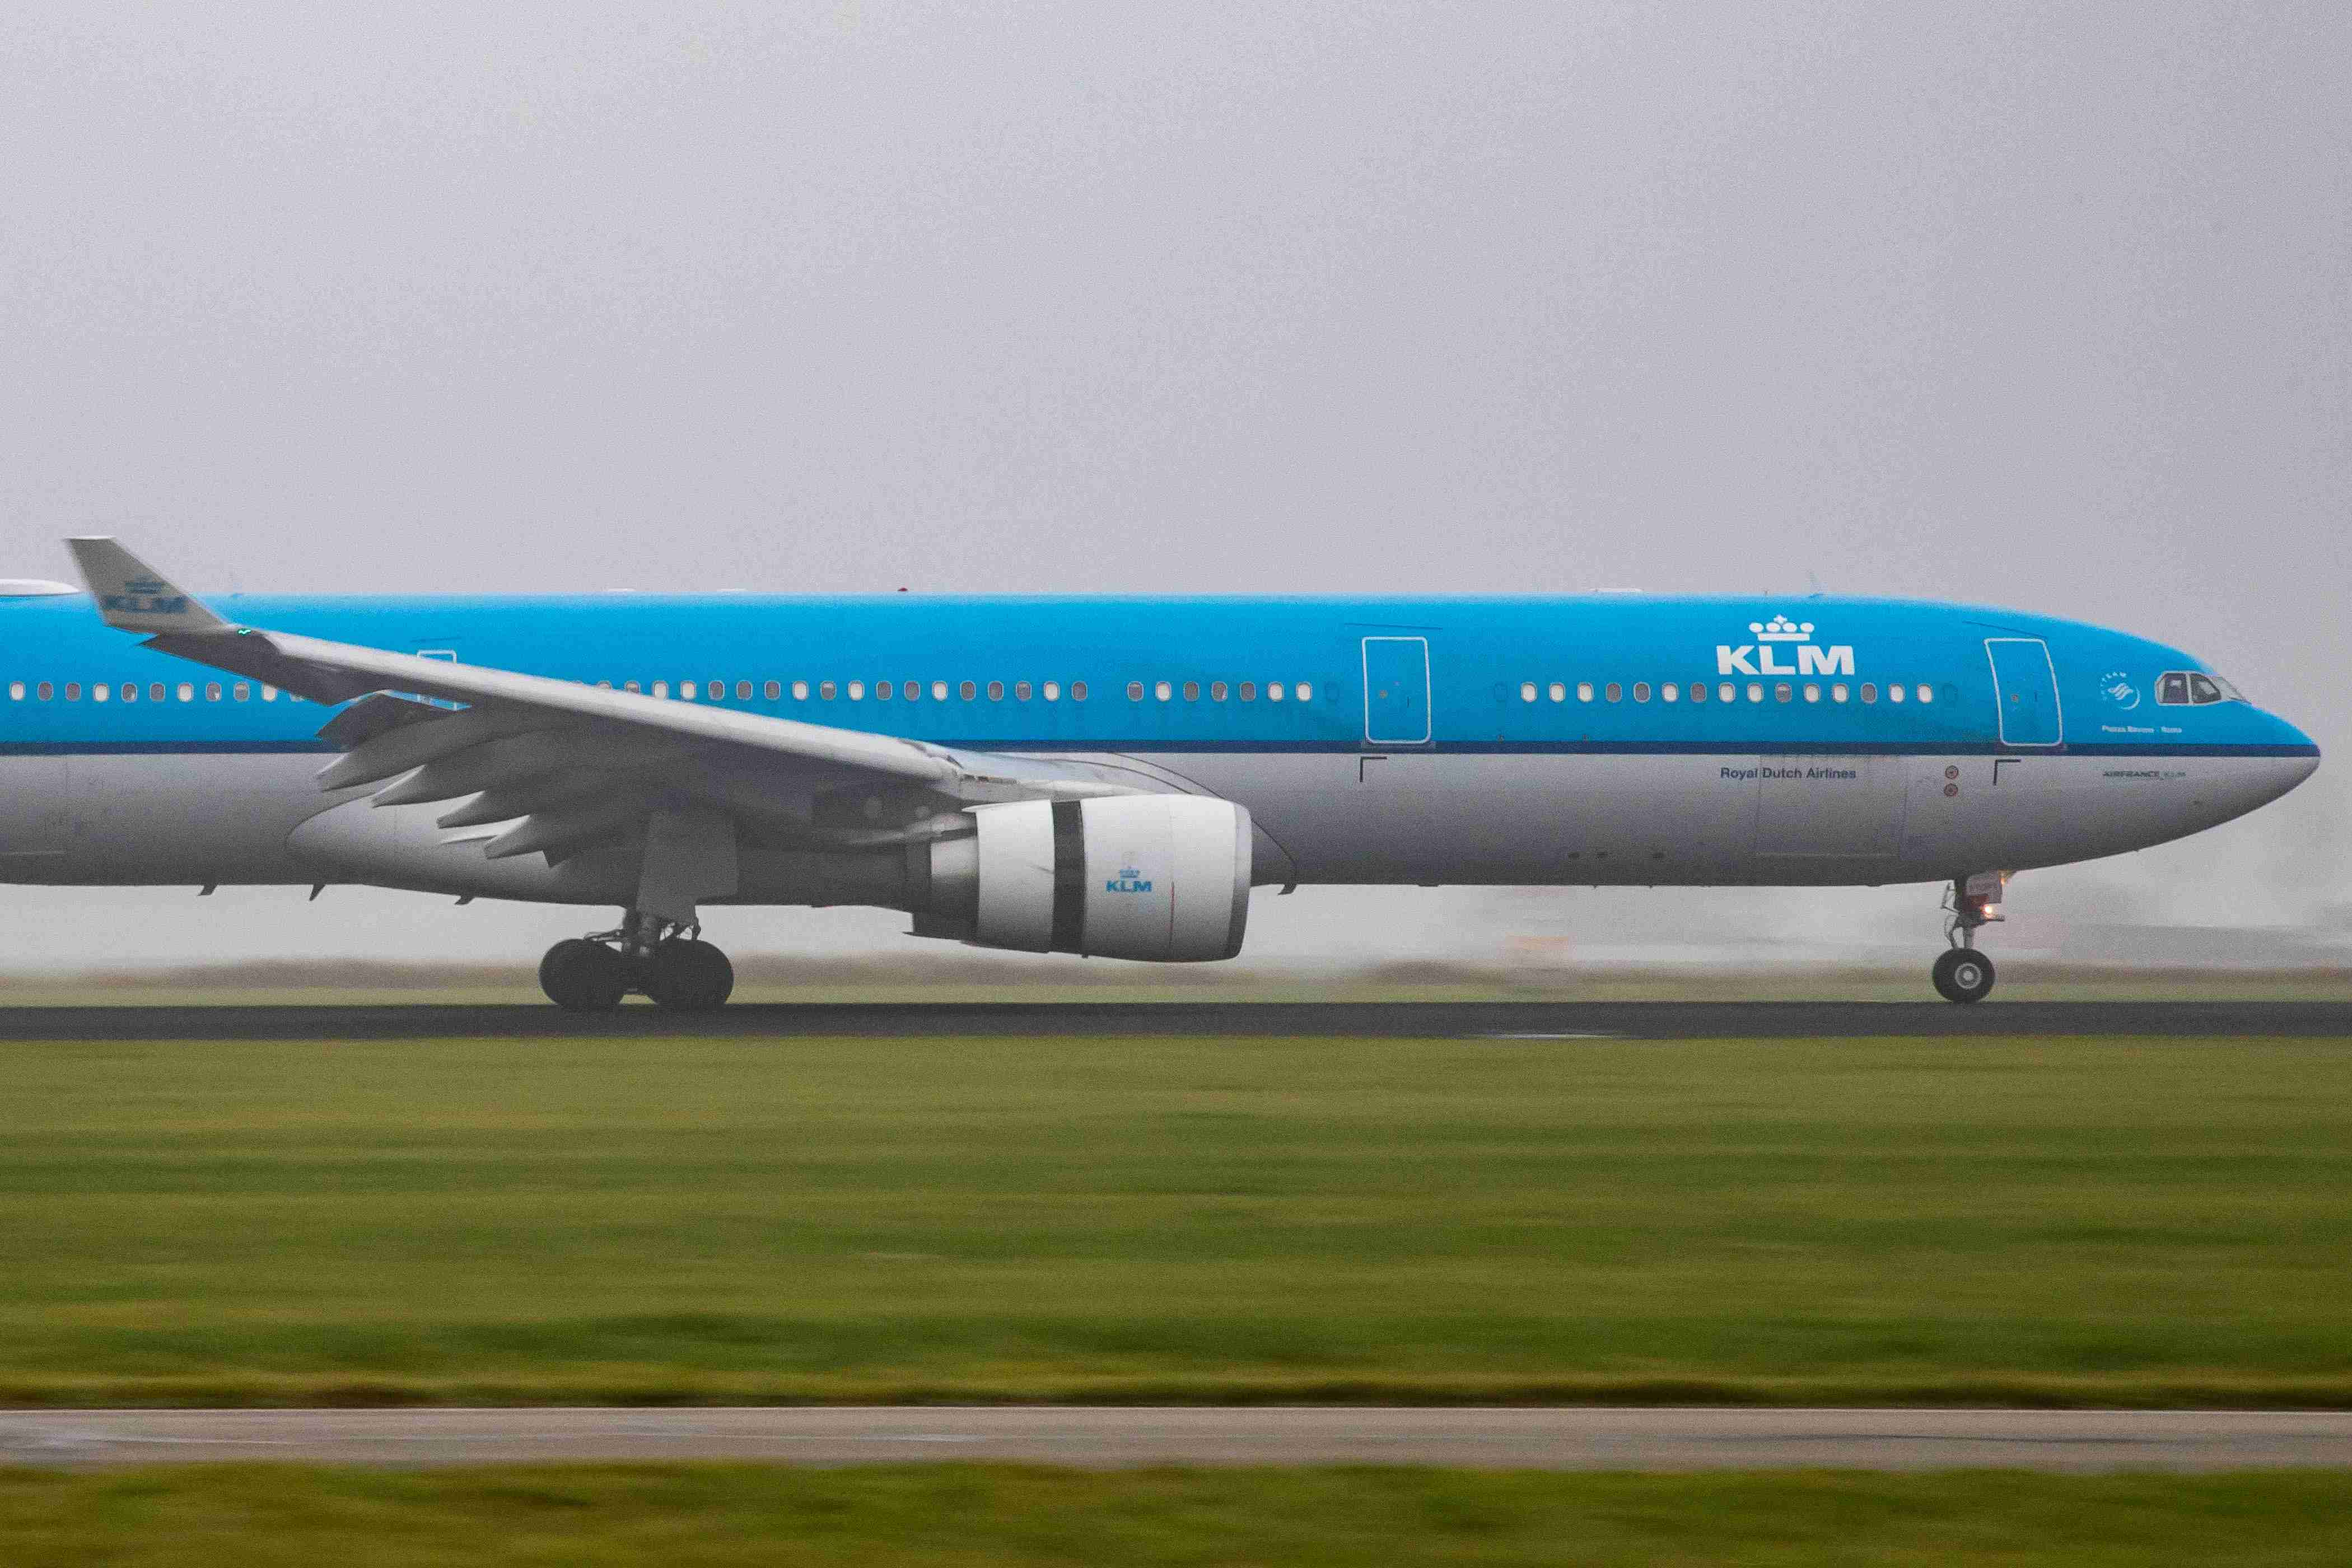 A KLM Airbus A330-300 lands in misty weather at Amsterdam Schiphol Airport (Photo by Nicolas Economou/SOPA Images/LightRocket via Getty Images)